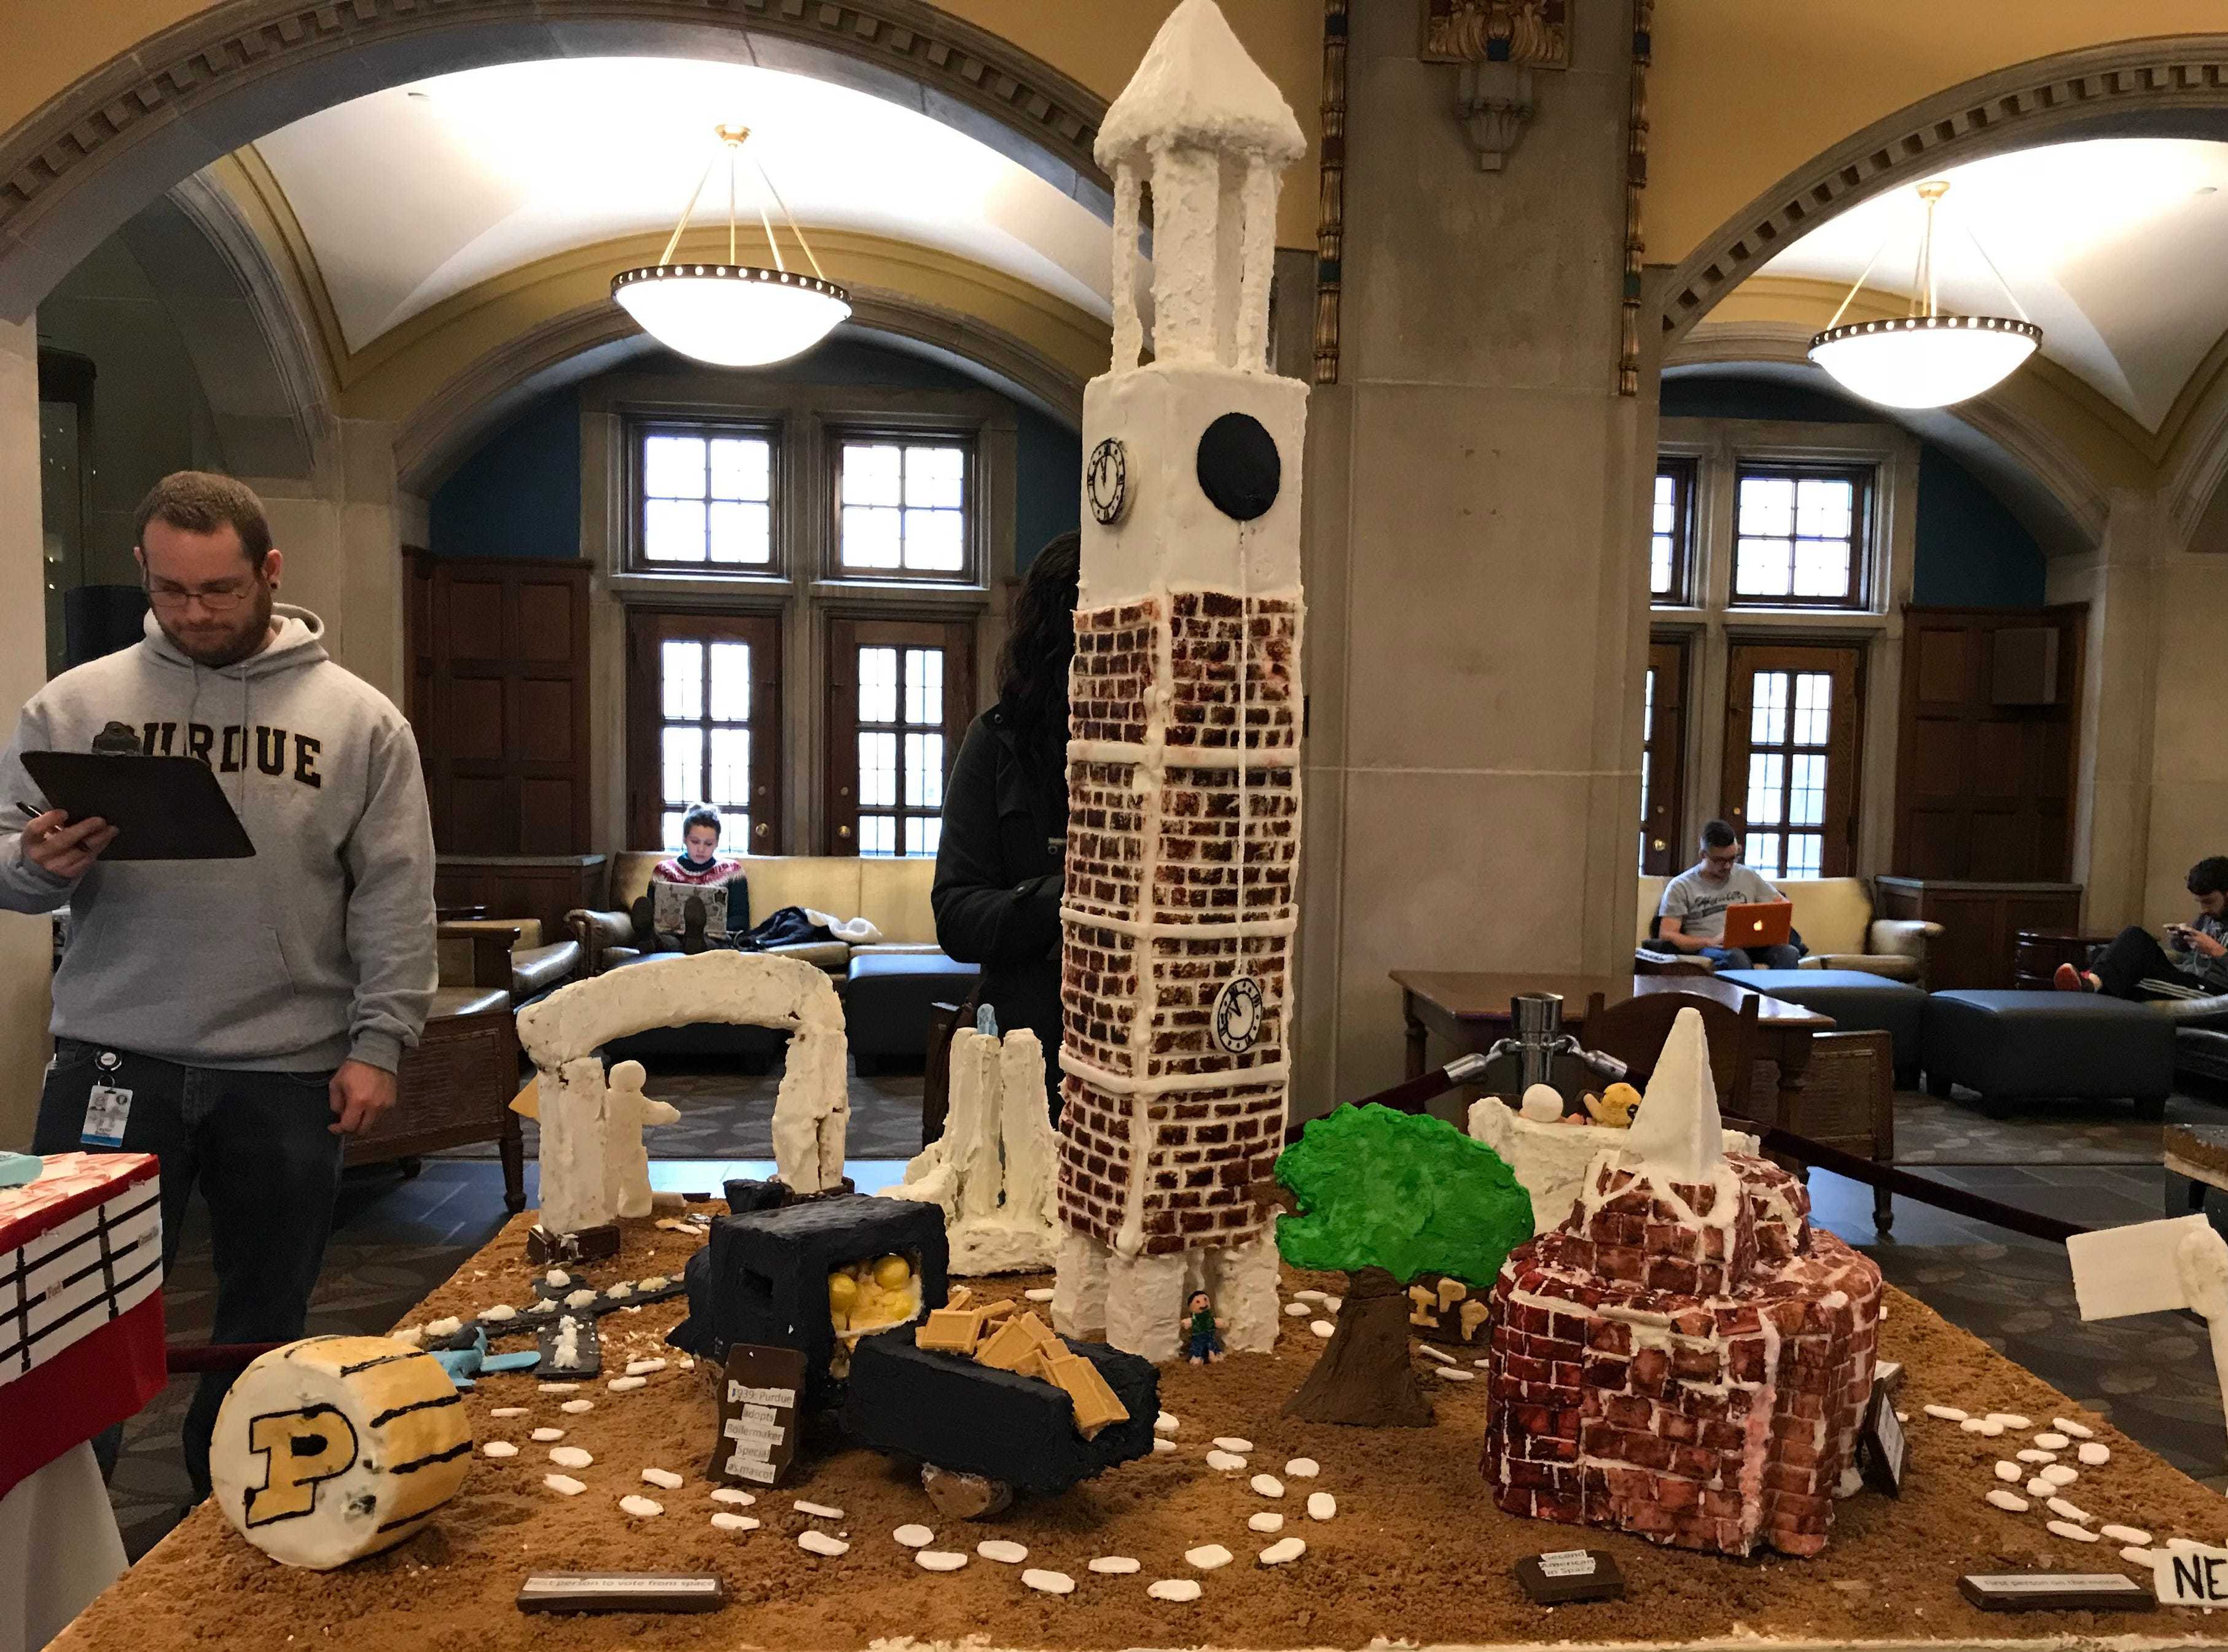 Ford Dining Court's gingerbread display